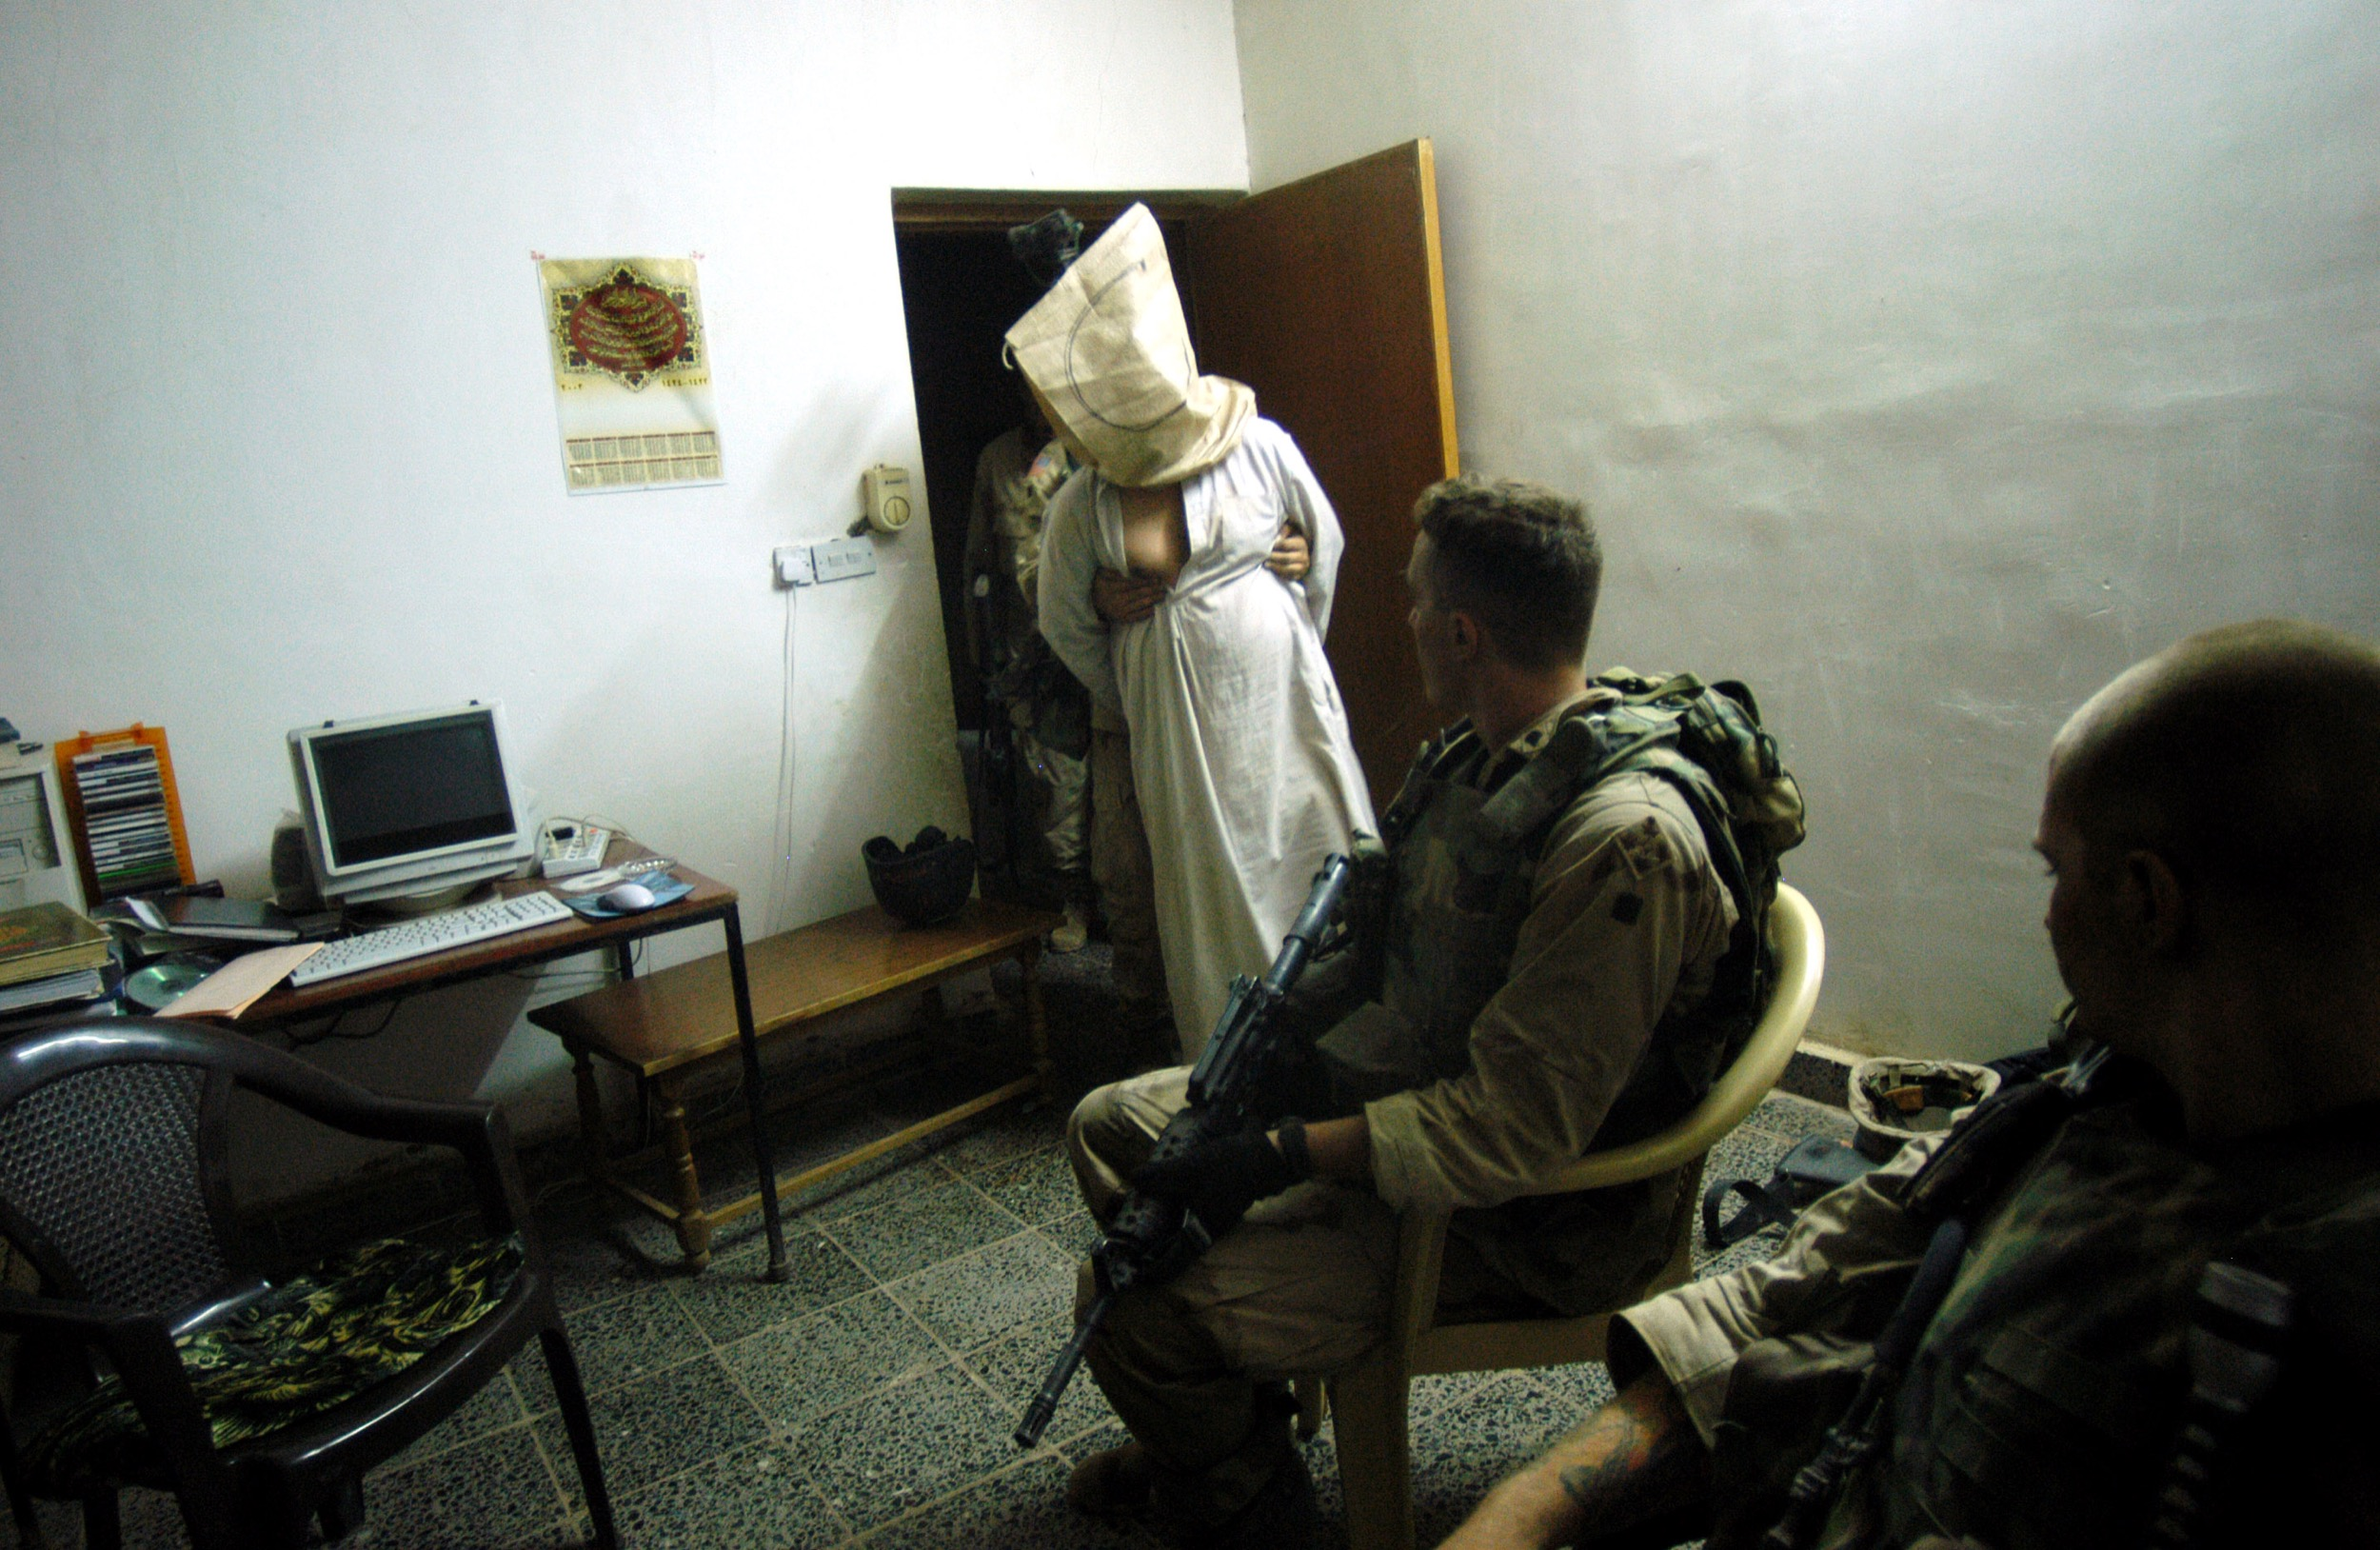 US soldiers stand over detained Iraqis, believed to be supporters of former Iraqi leader Saddam Hussein, 30km north of Baghdad, June 2003.